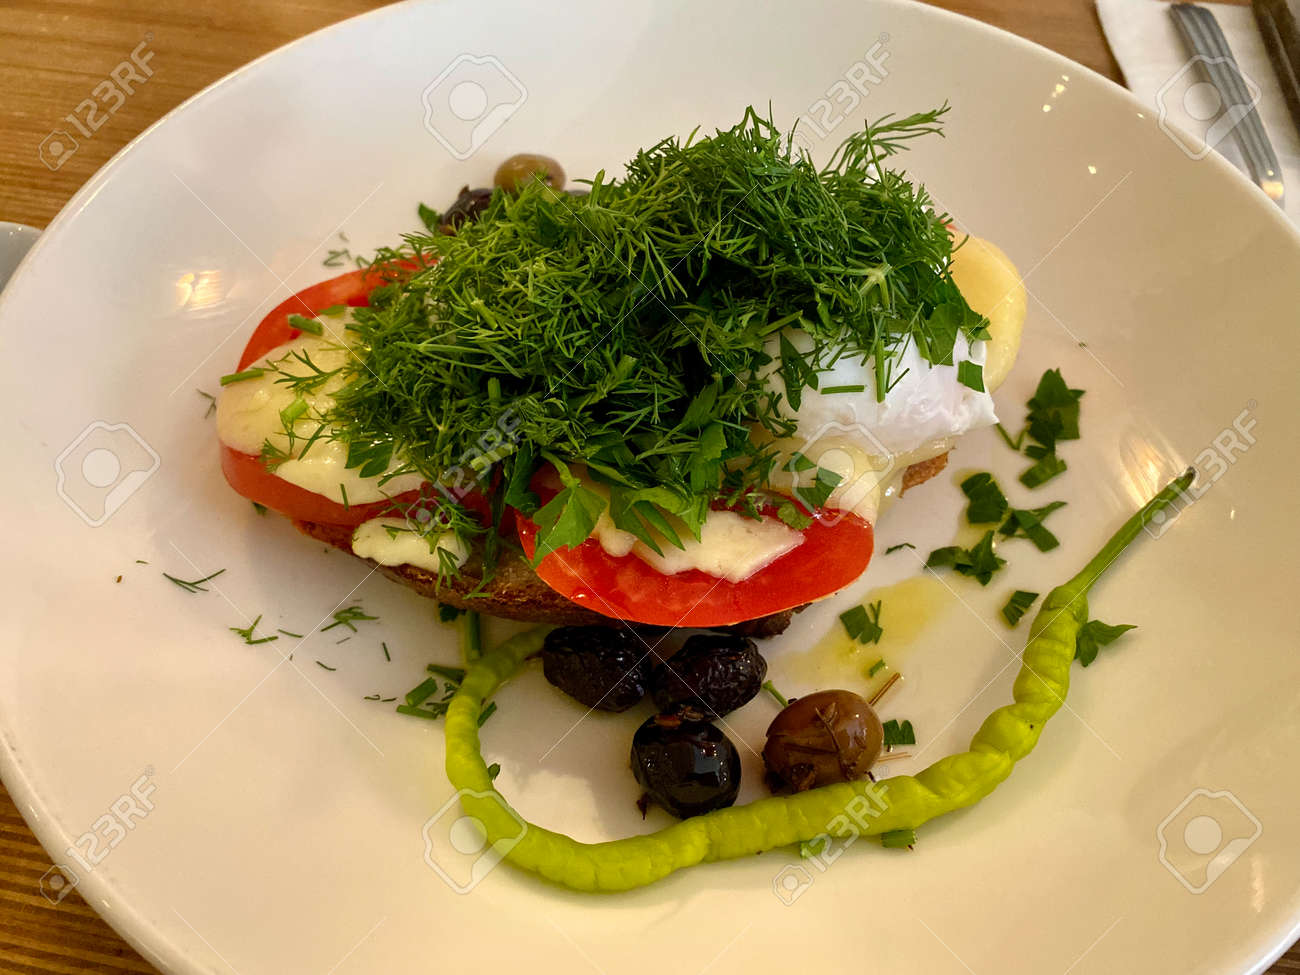 Healthy Breakfast Plate Tartine with Dill, Poached Egg and Green Pepper served at Restaurant. ready to eat. - 173253621